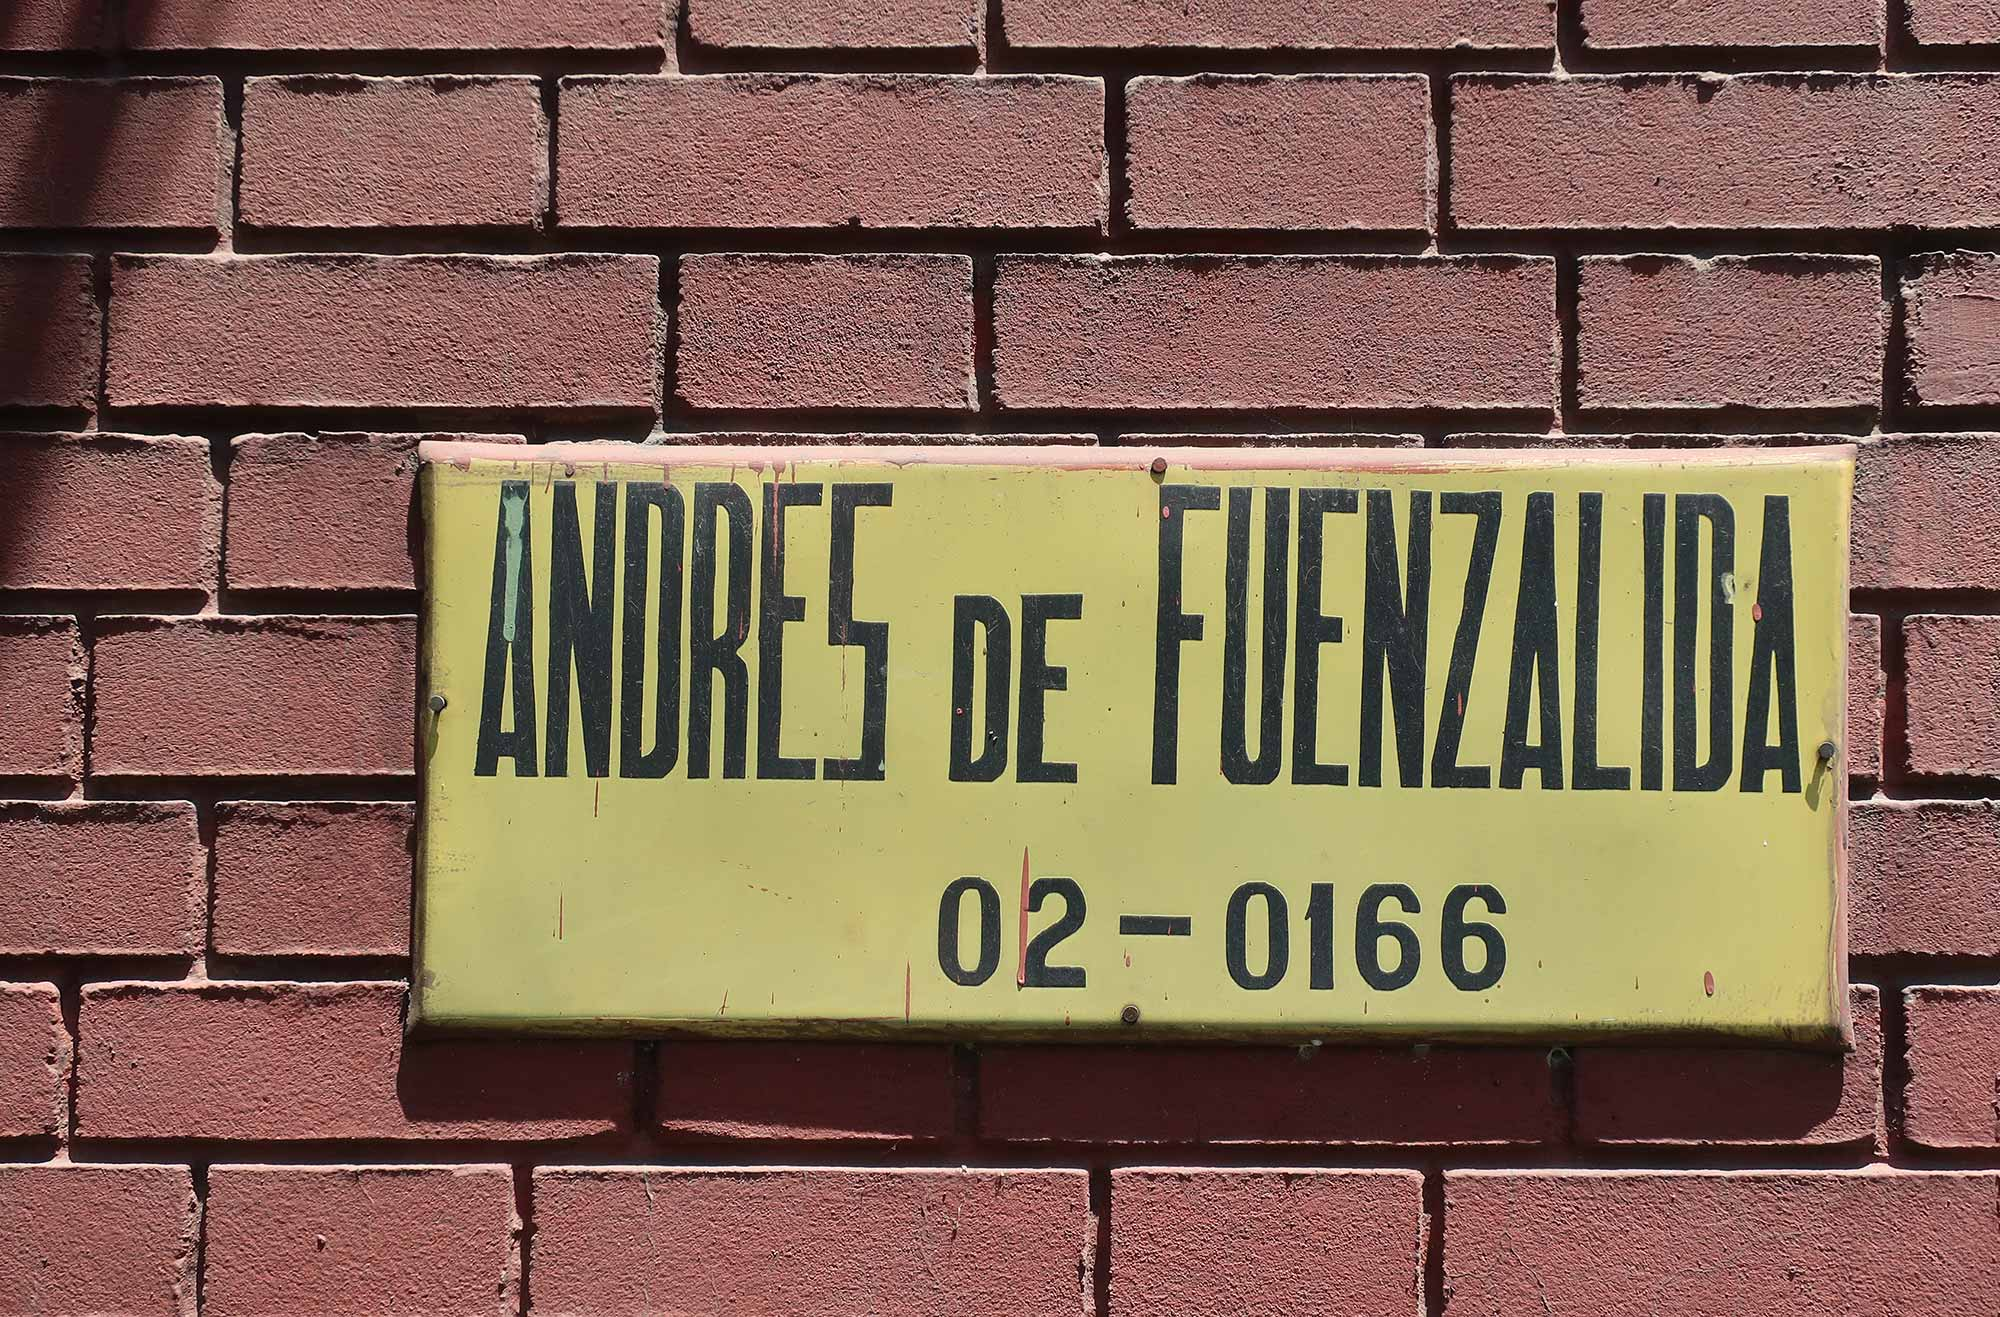 Street sign from the Barrio Providencia Area in Santiago de Chile.